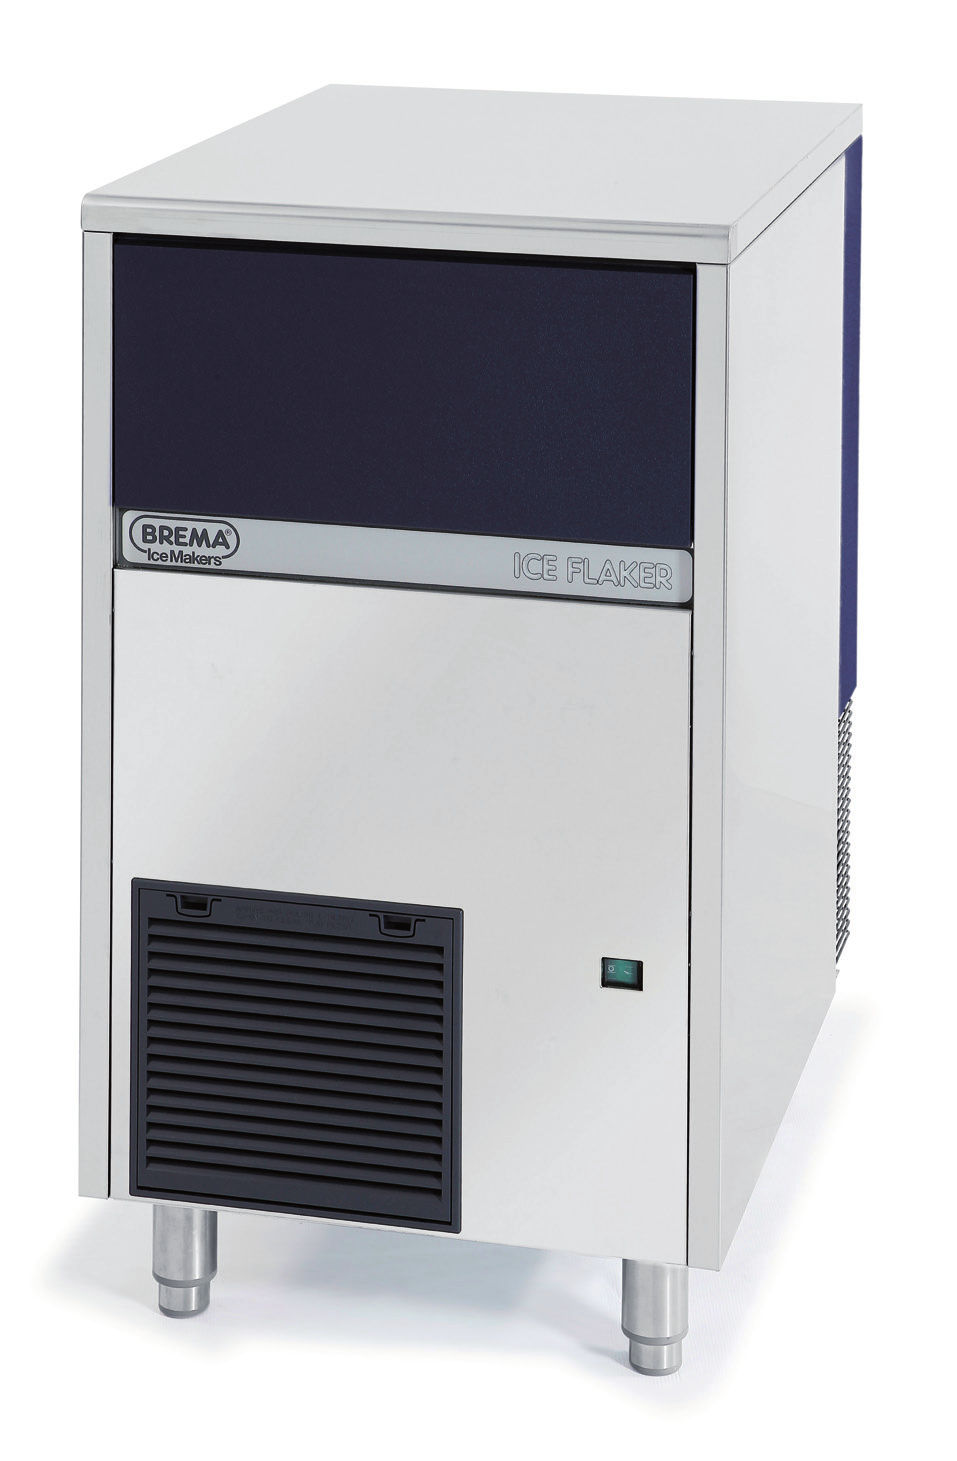 Buy Brema Ice Maker GB 903 HC at best price in India with Free Shipping, Installation & Service